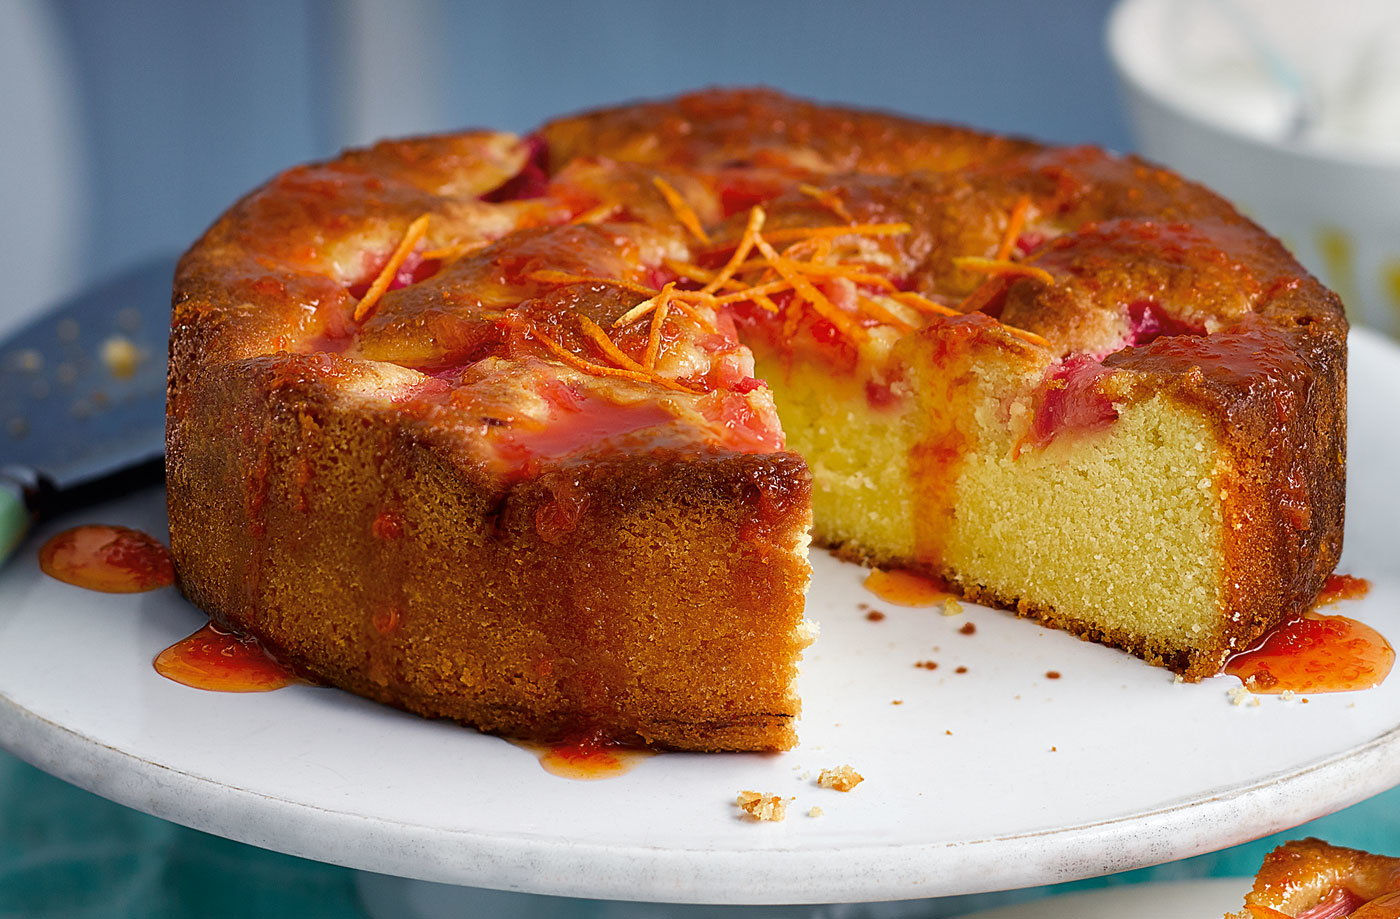 Rhubarb, yogurt and clementine cake